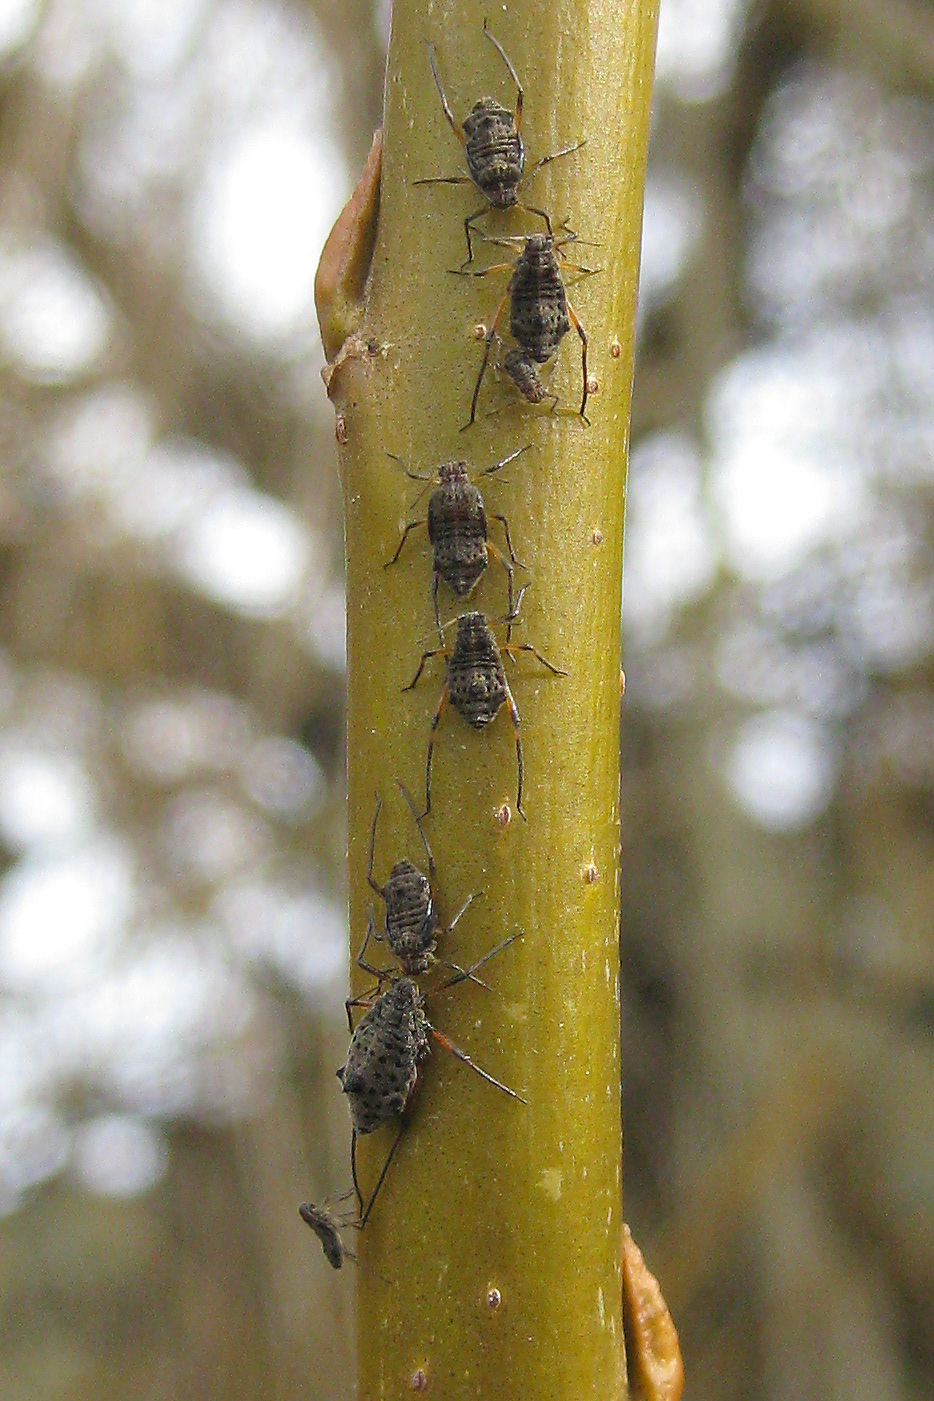 Giant willow aphids feeding on a willow stem